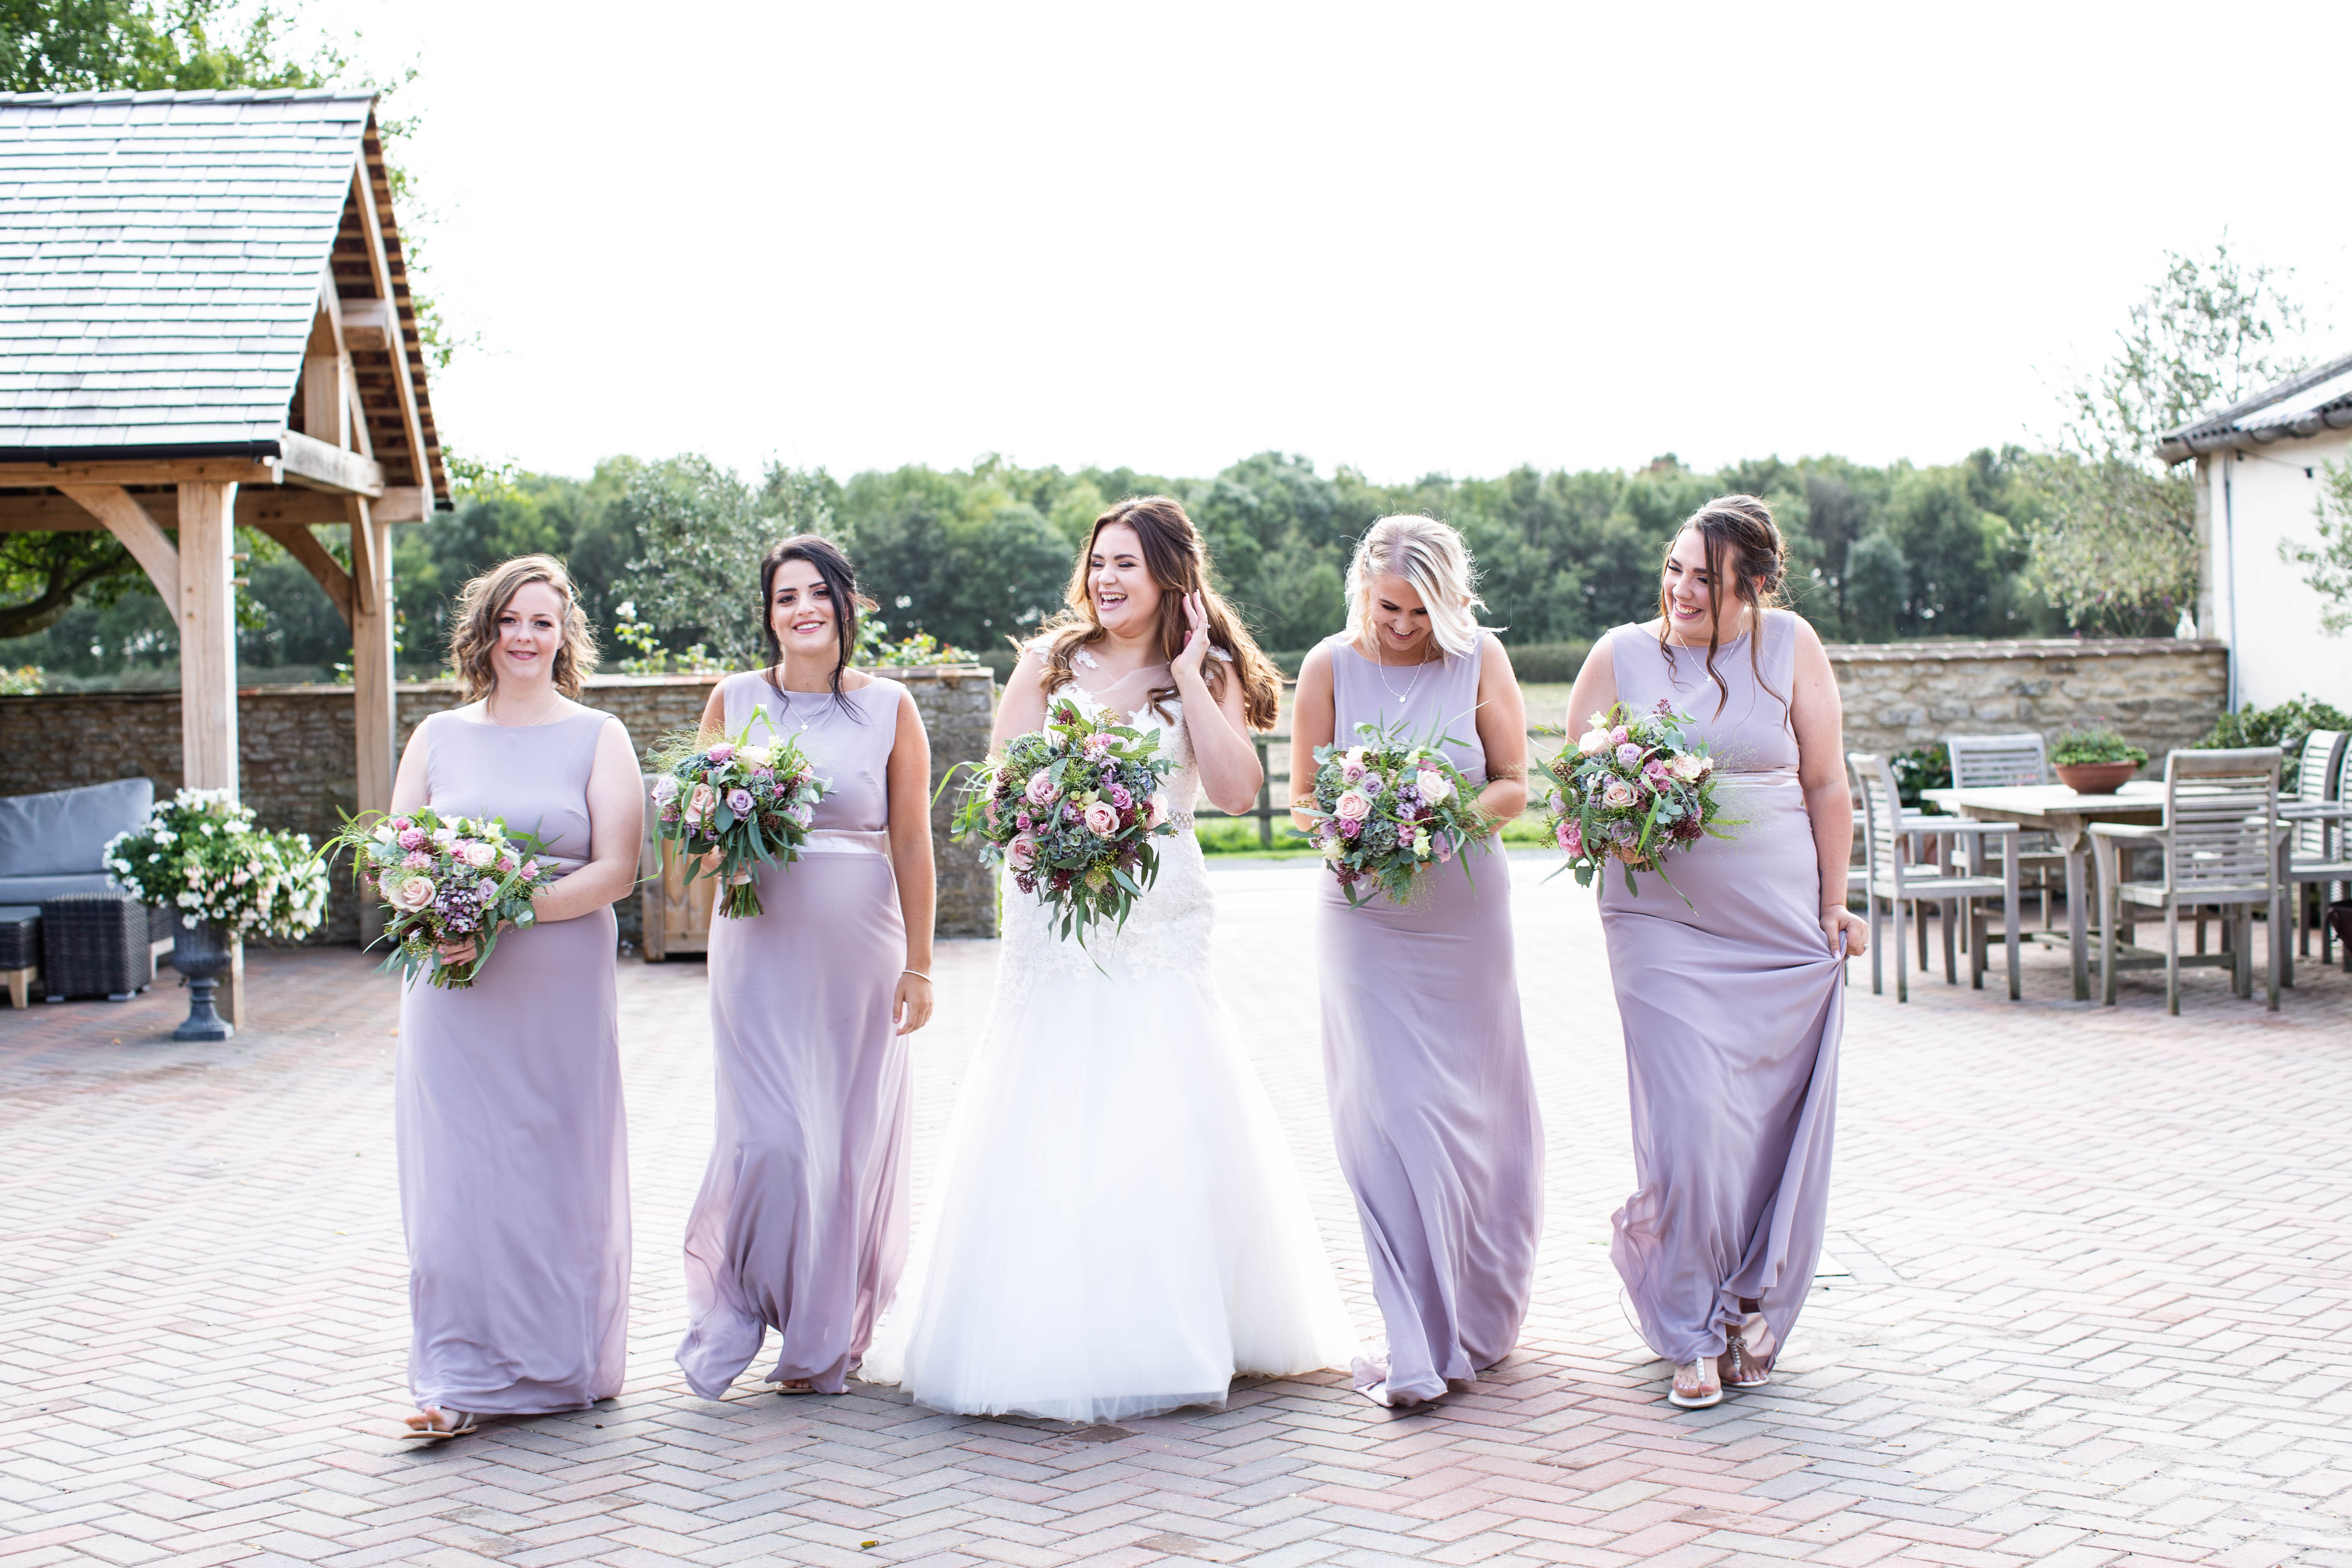 A group of brides.